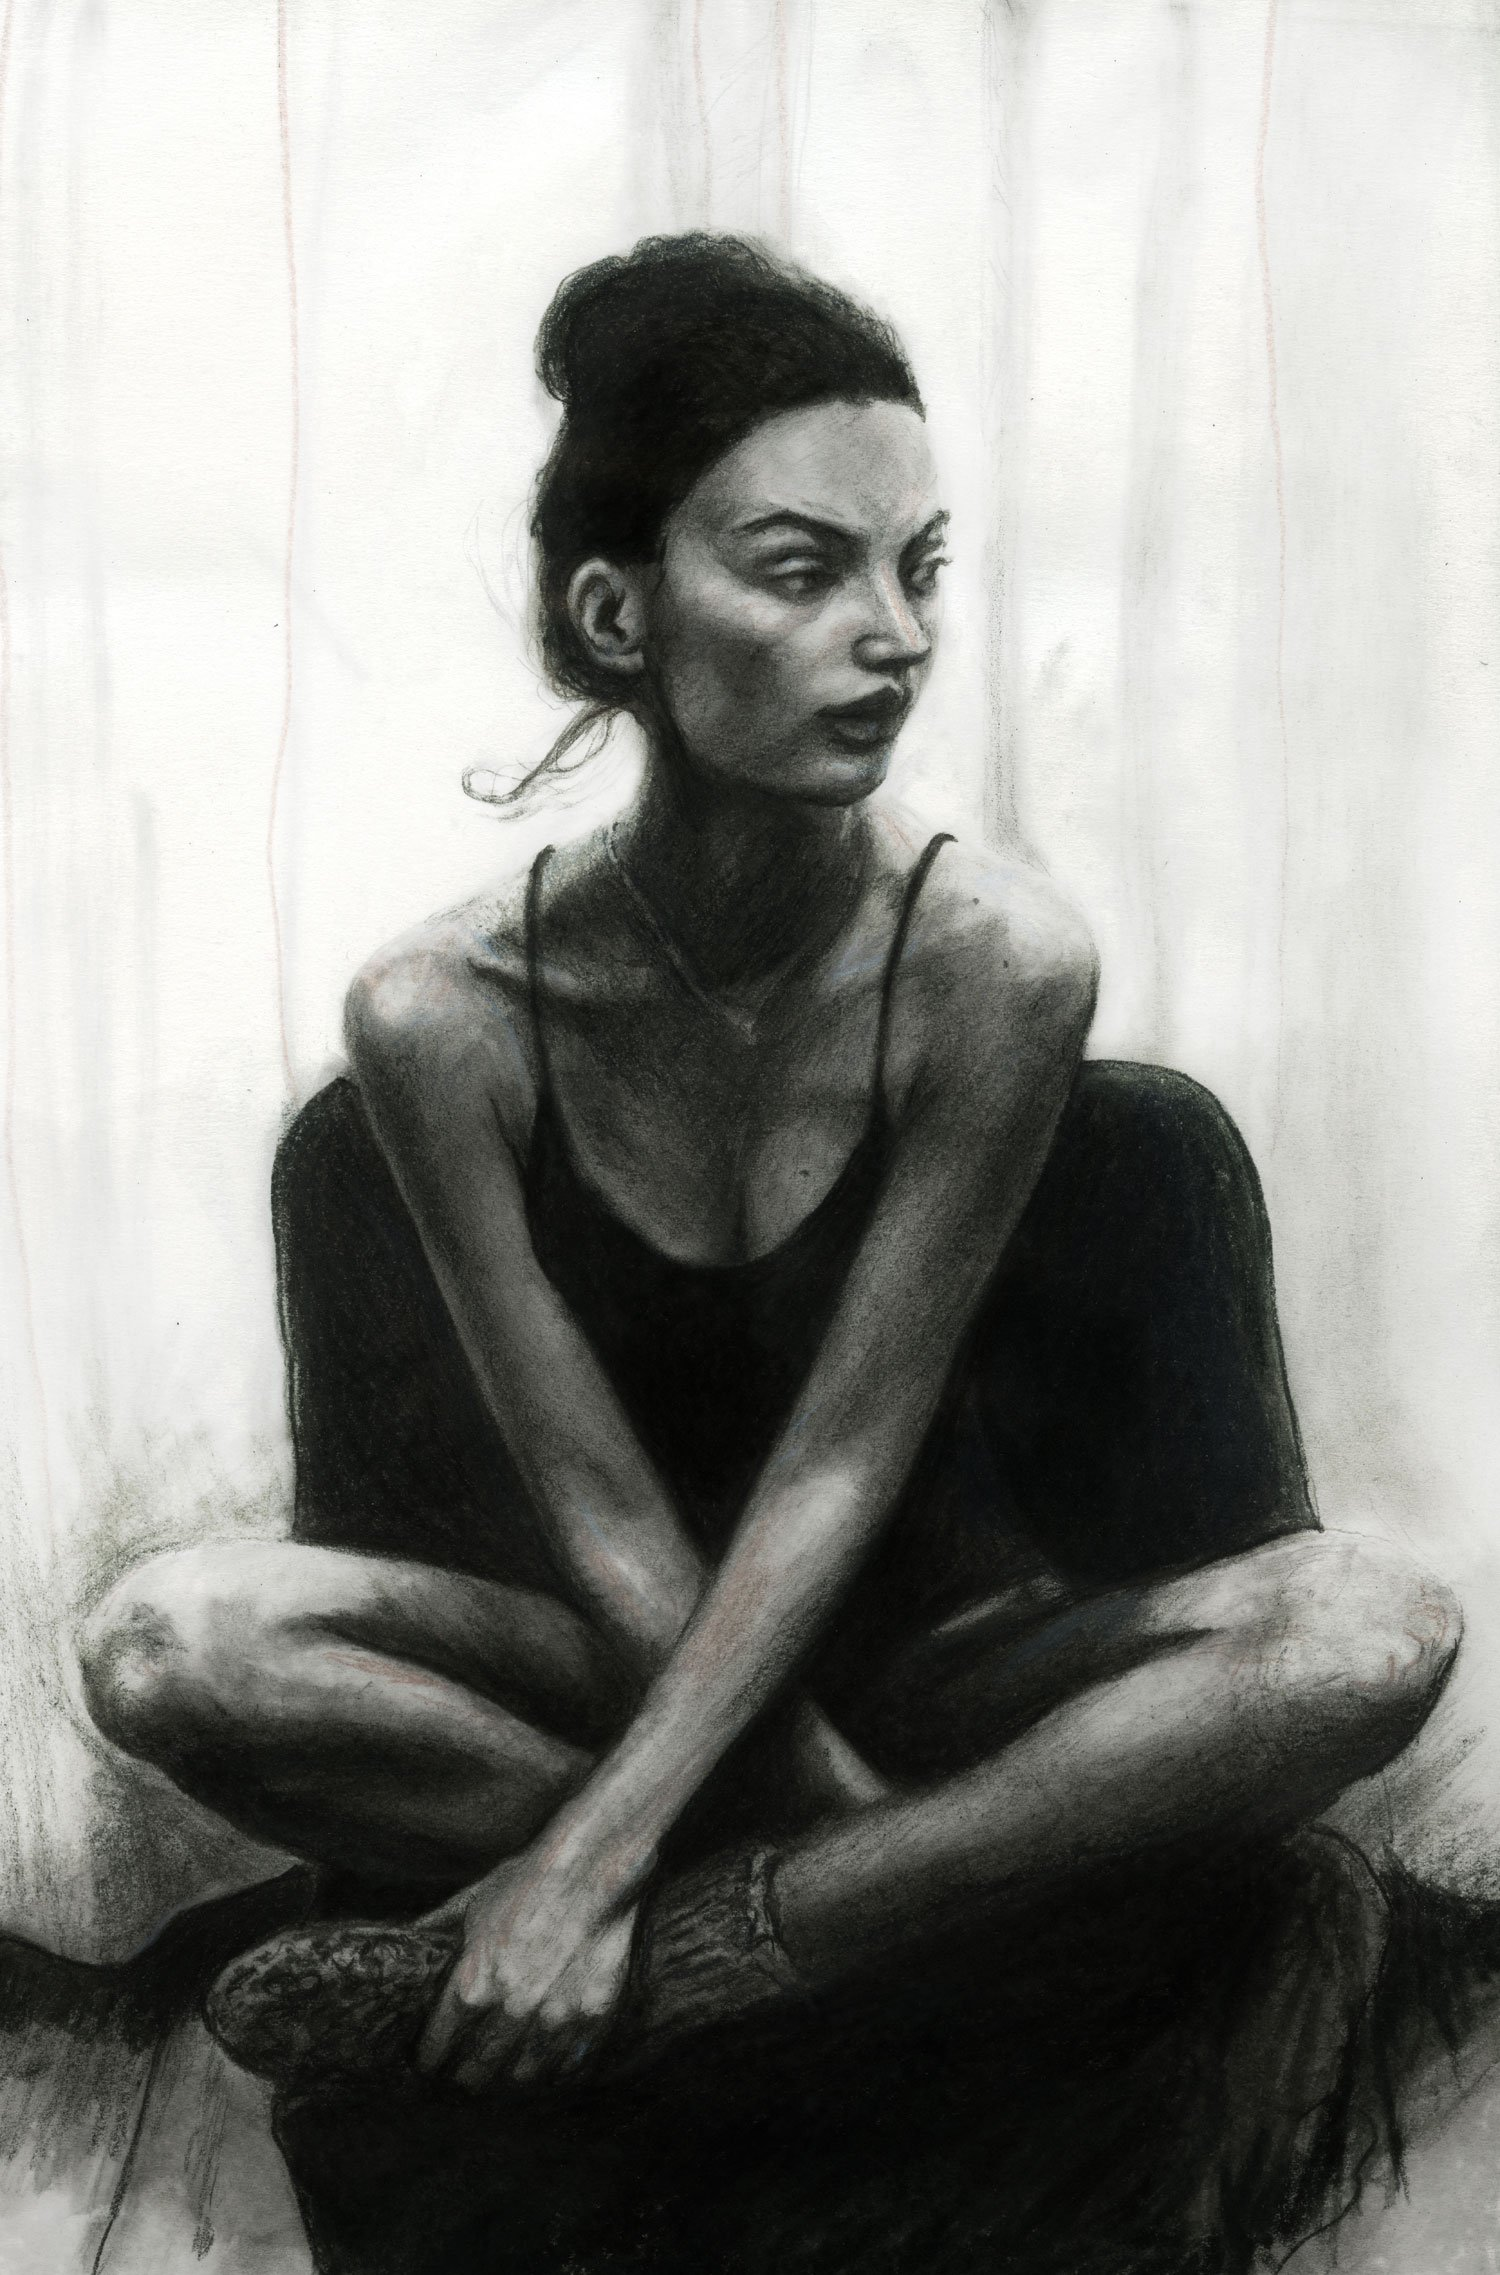 Artist Danny Roberts Pencil Study Sketch of Swedish model Mona Johannesson Sitting Black and white